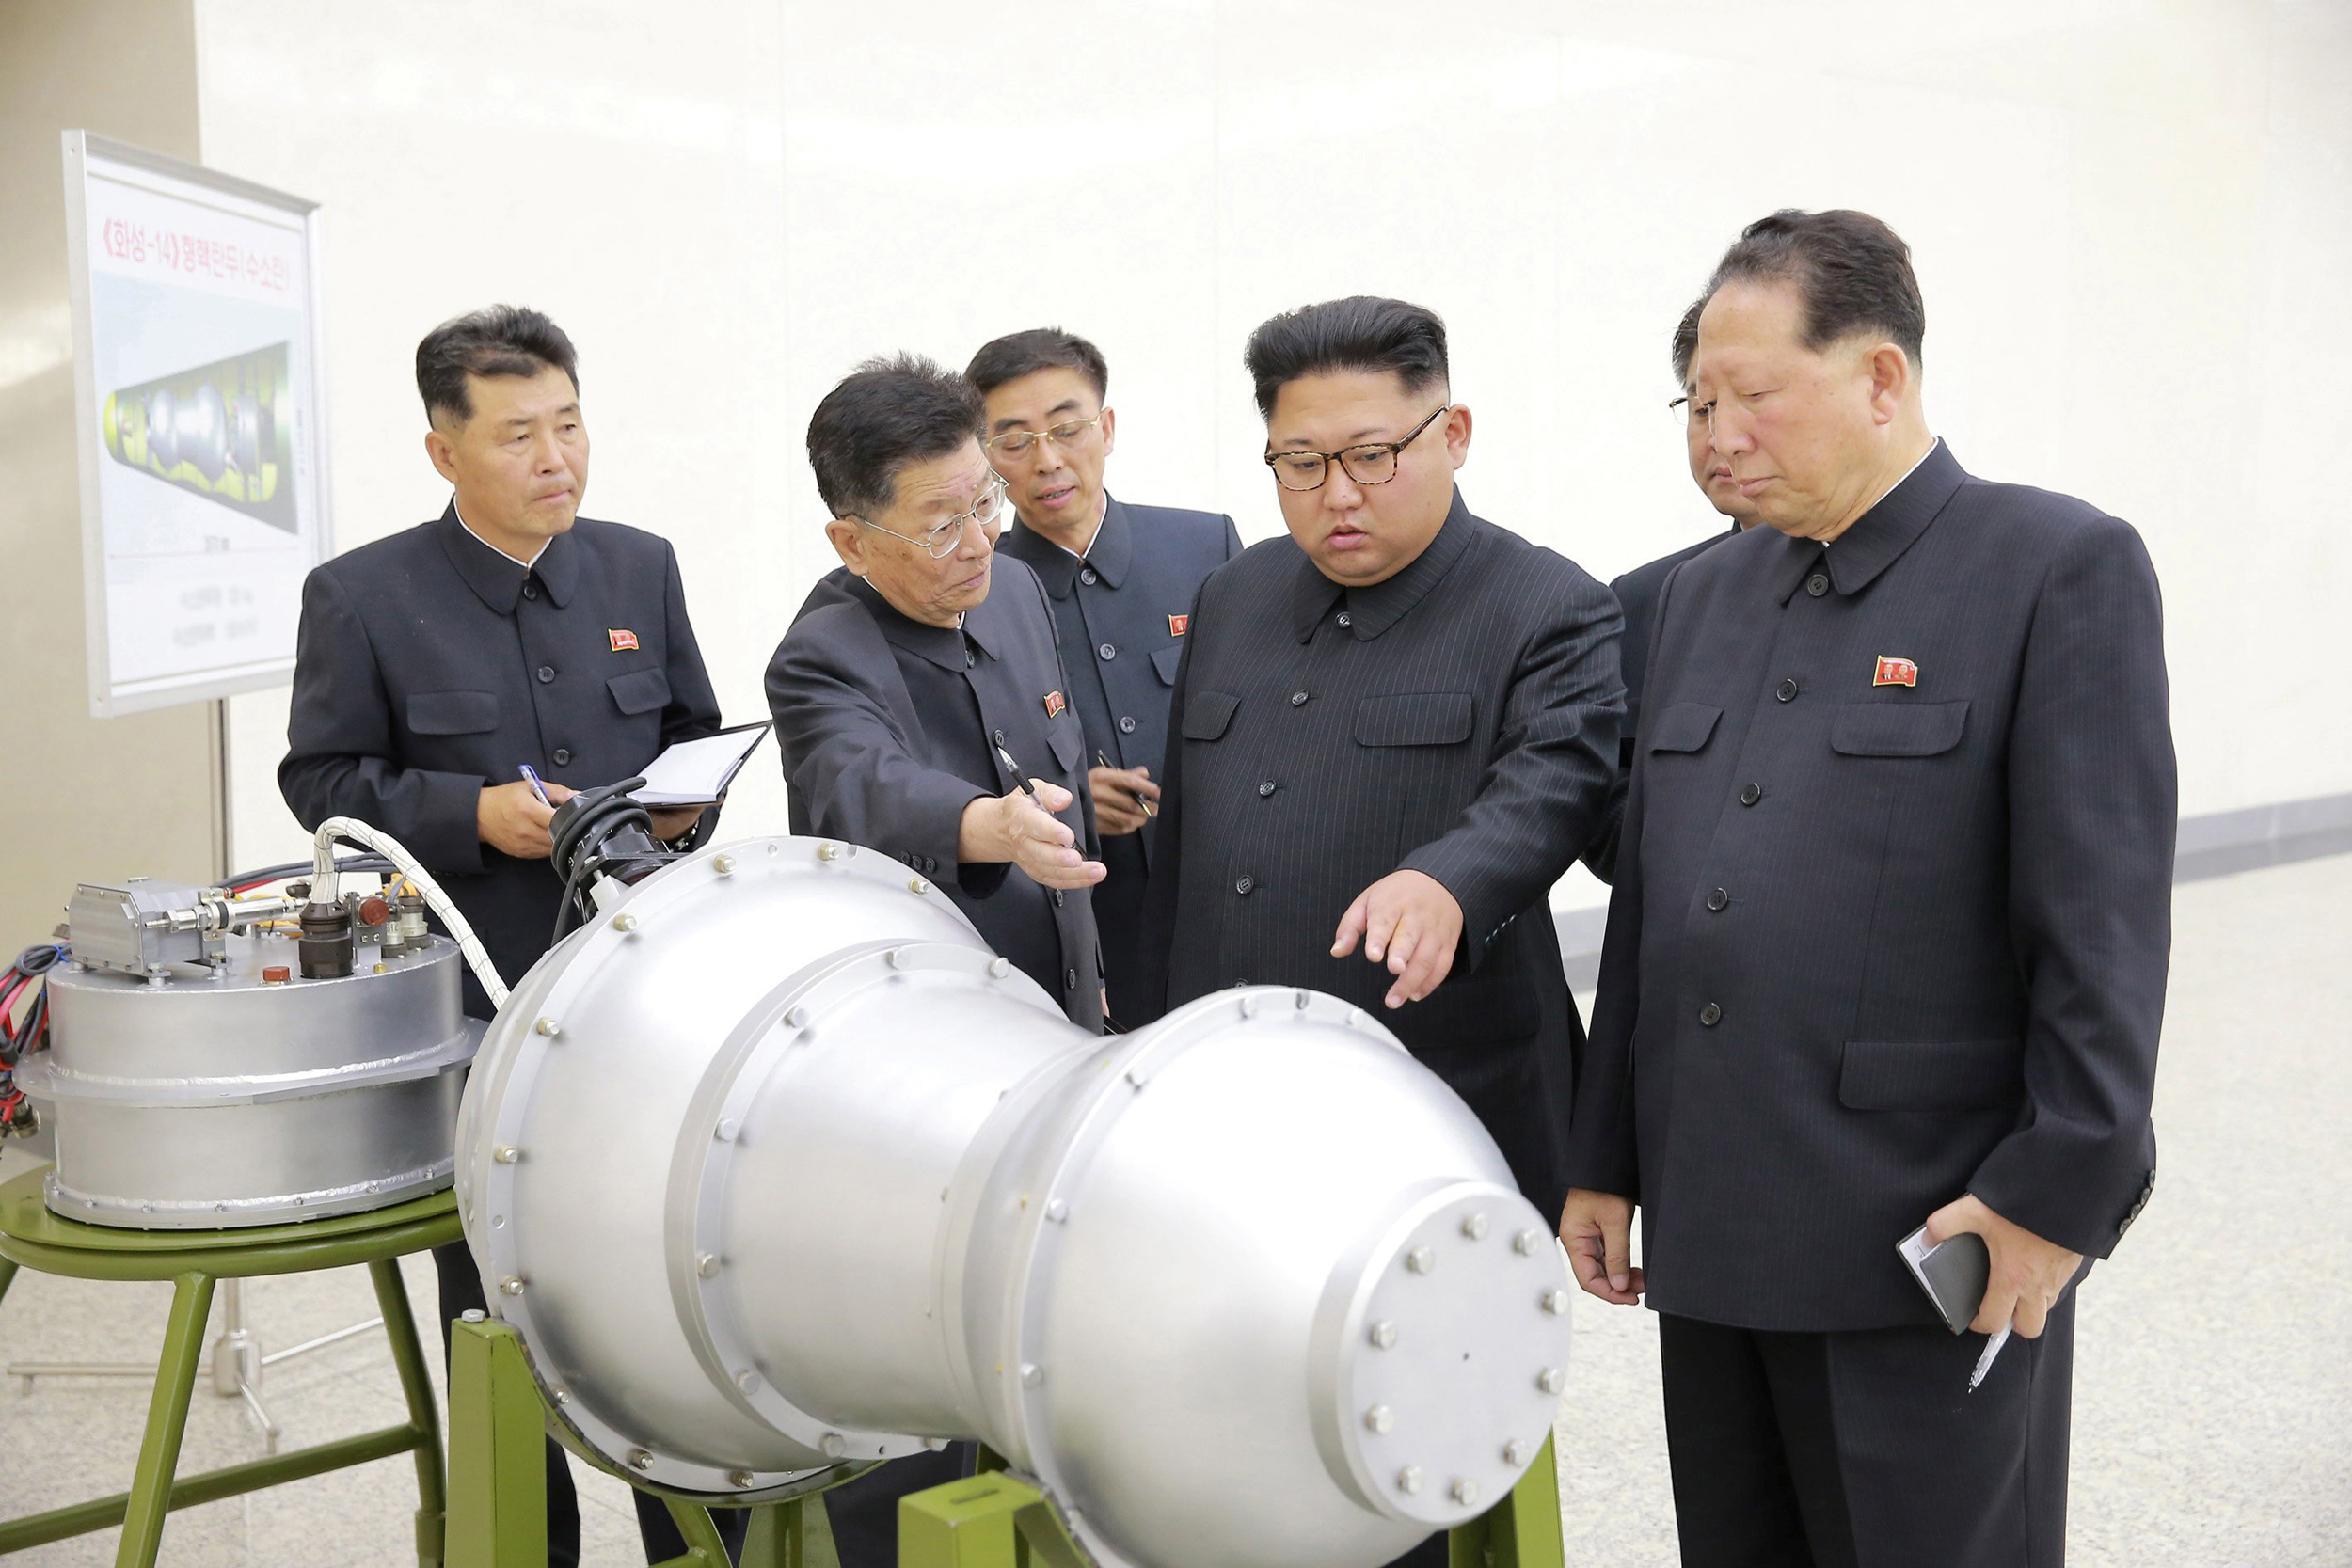 What Would Happen if North Korea Tested an H-Bomb?